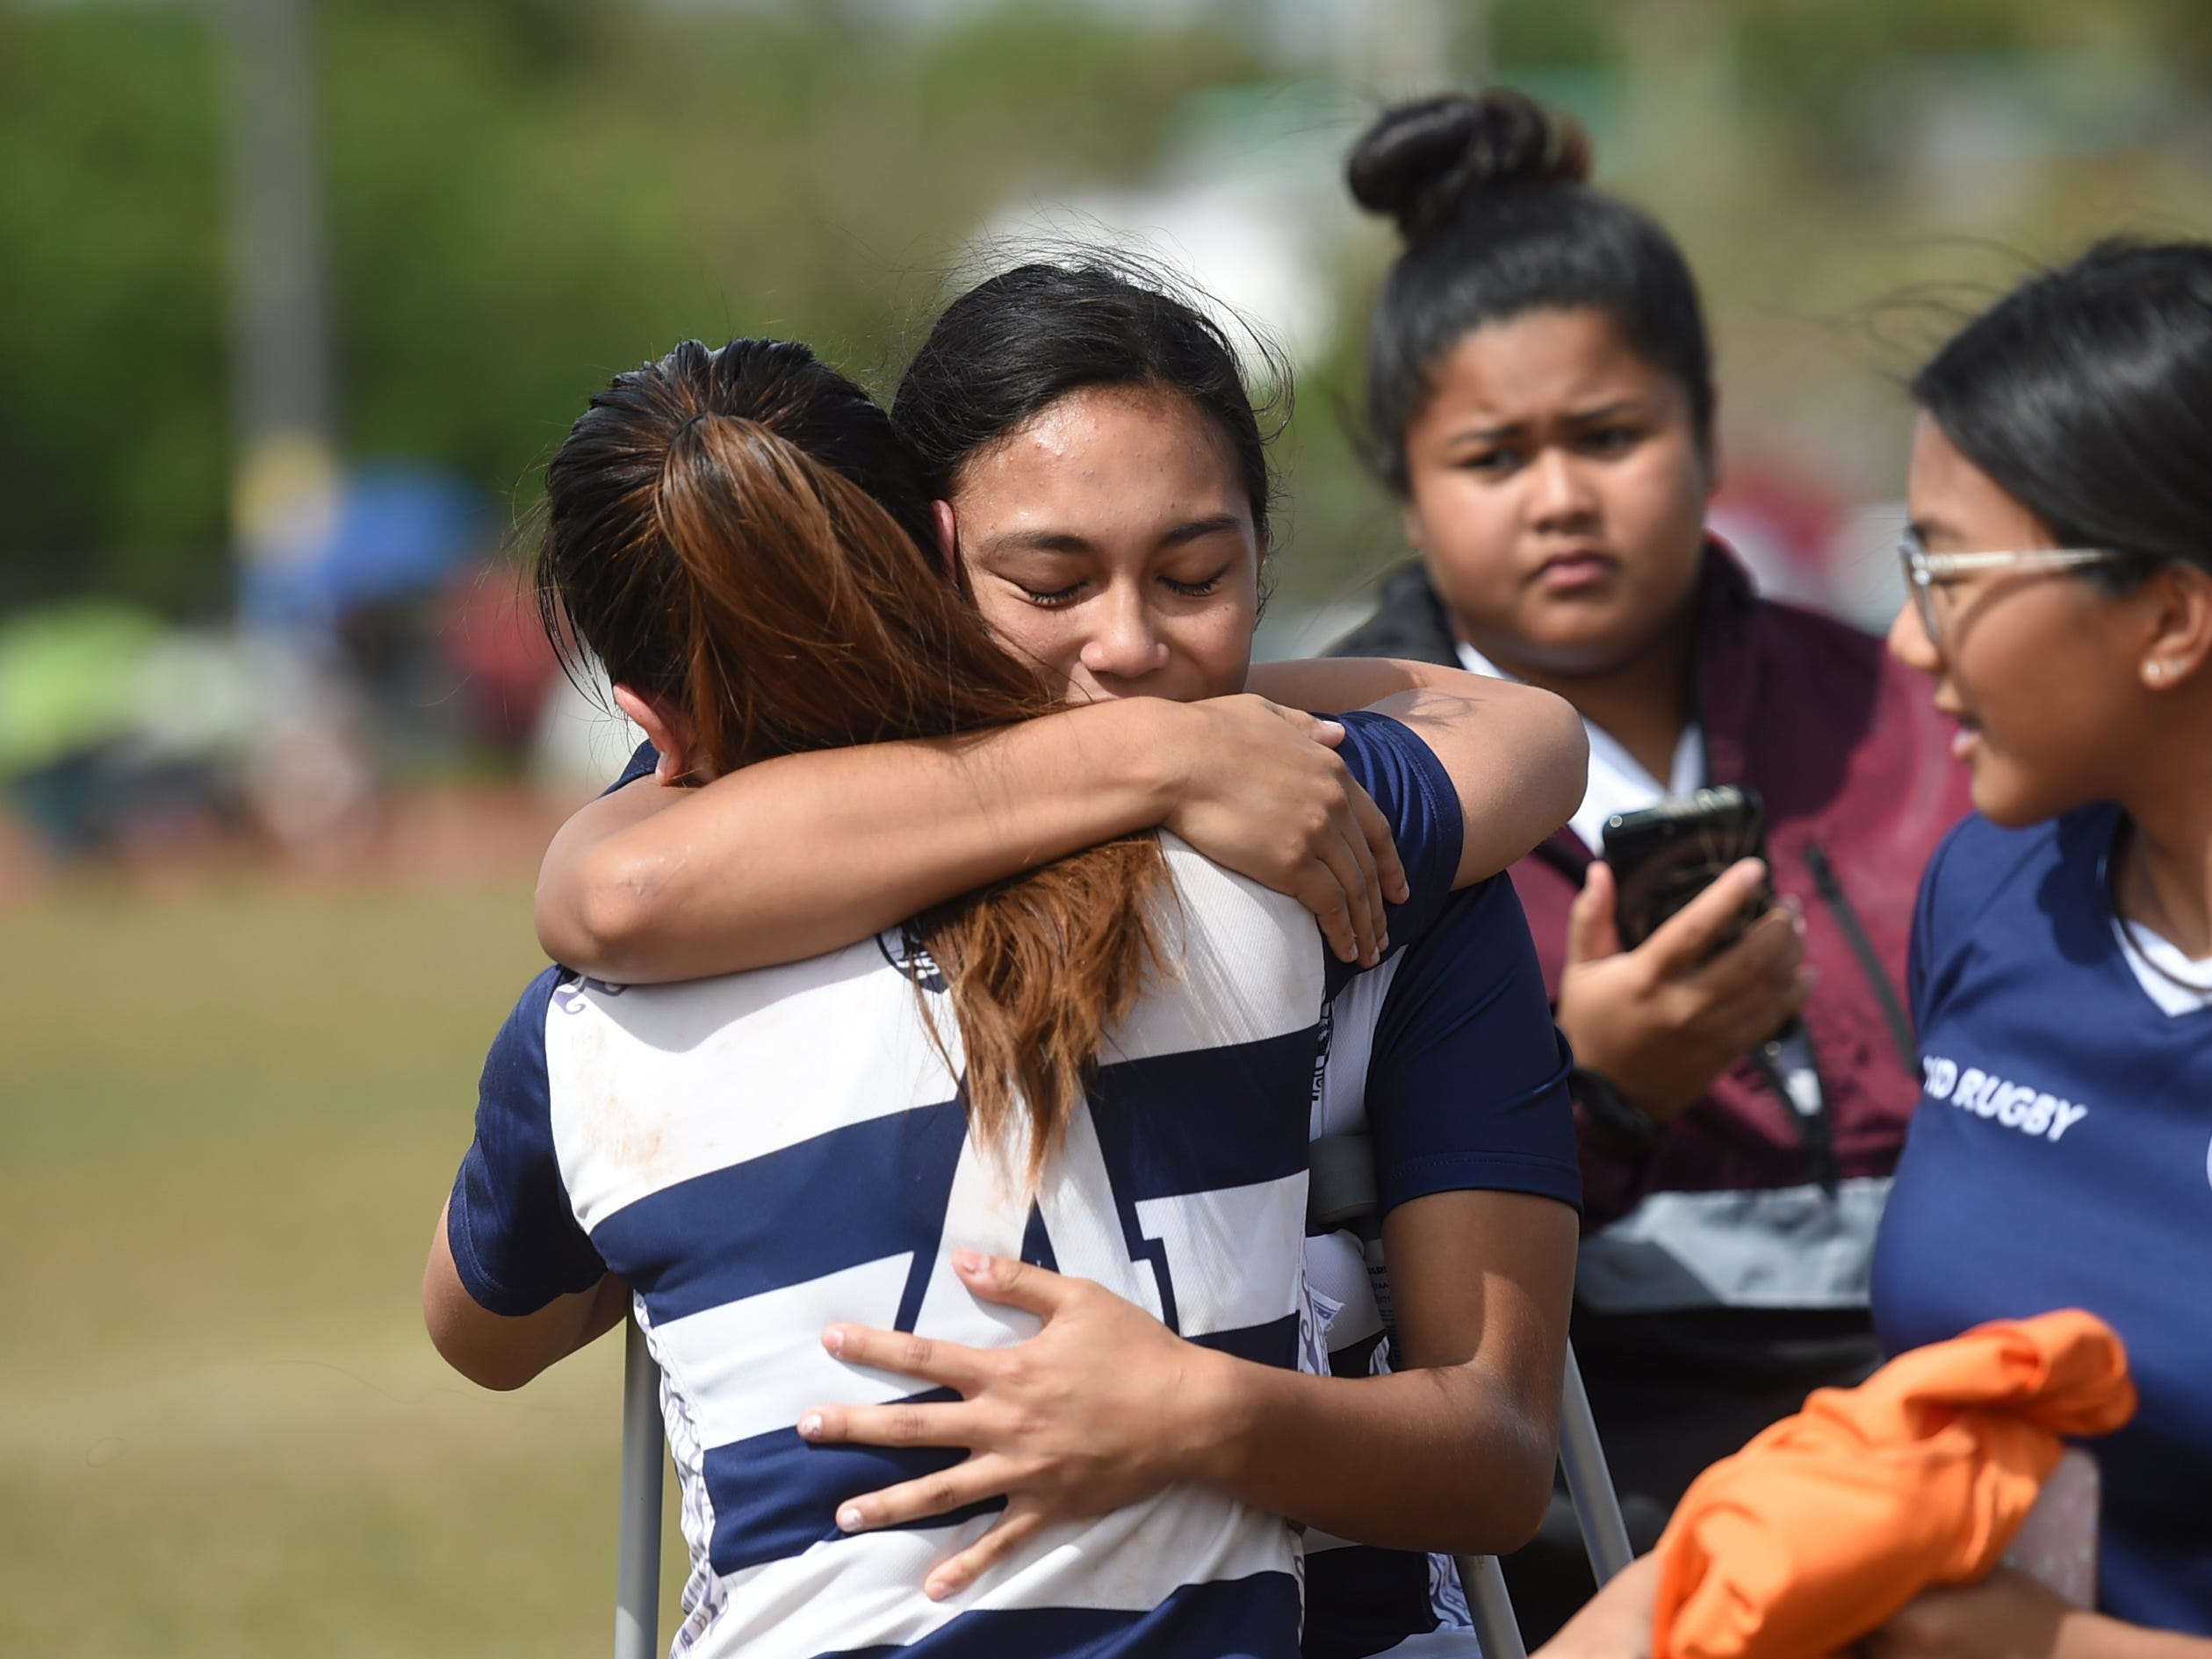 Notre Dame Royals players embrace following their their 21-17 win in the GRFU/IIAAG Girls Rugby Finals against the George Washington Geckos at the GW High School Field in Mangilao, March 16, 2019.